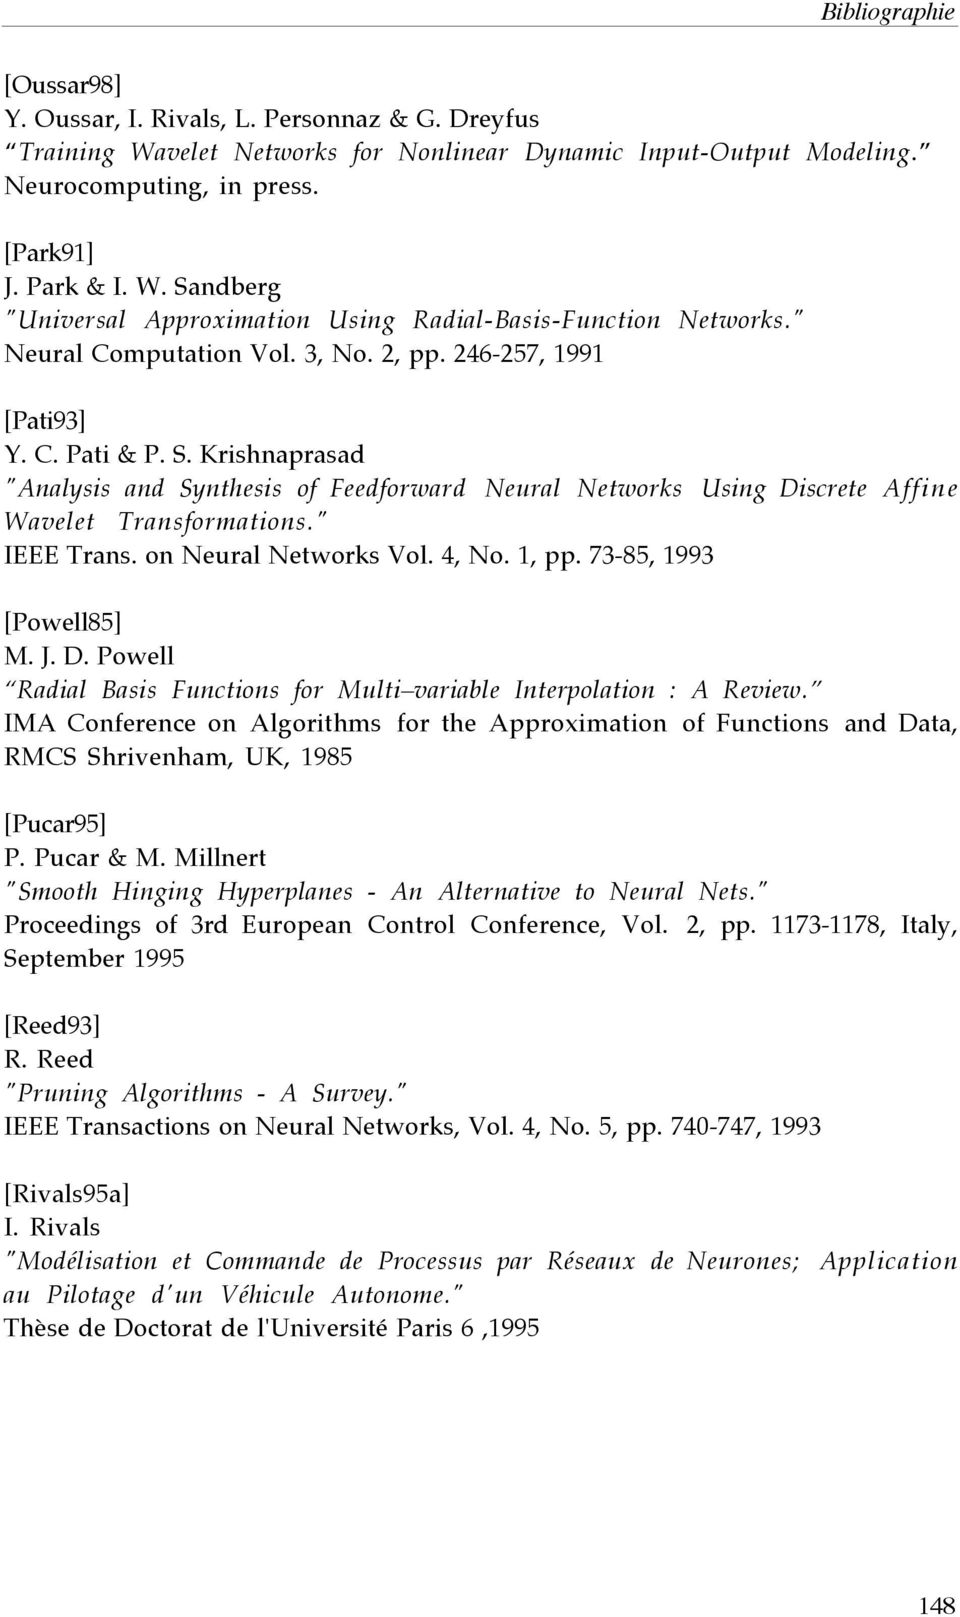 """ IEEE Trans. on Neural Networks Vol. 4, No. 1, pp. 73-85, 1993 [Powell85] M. J. D. Powell Radial Basis Functions for Multi variable Interpolation : A Review."